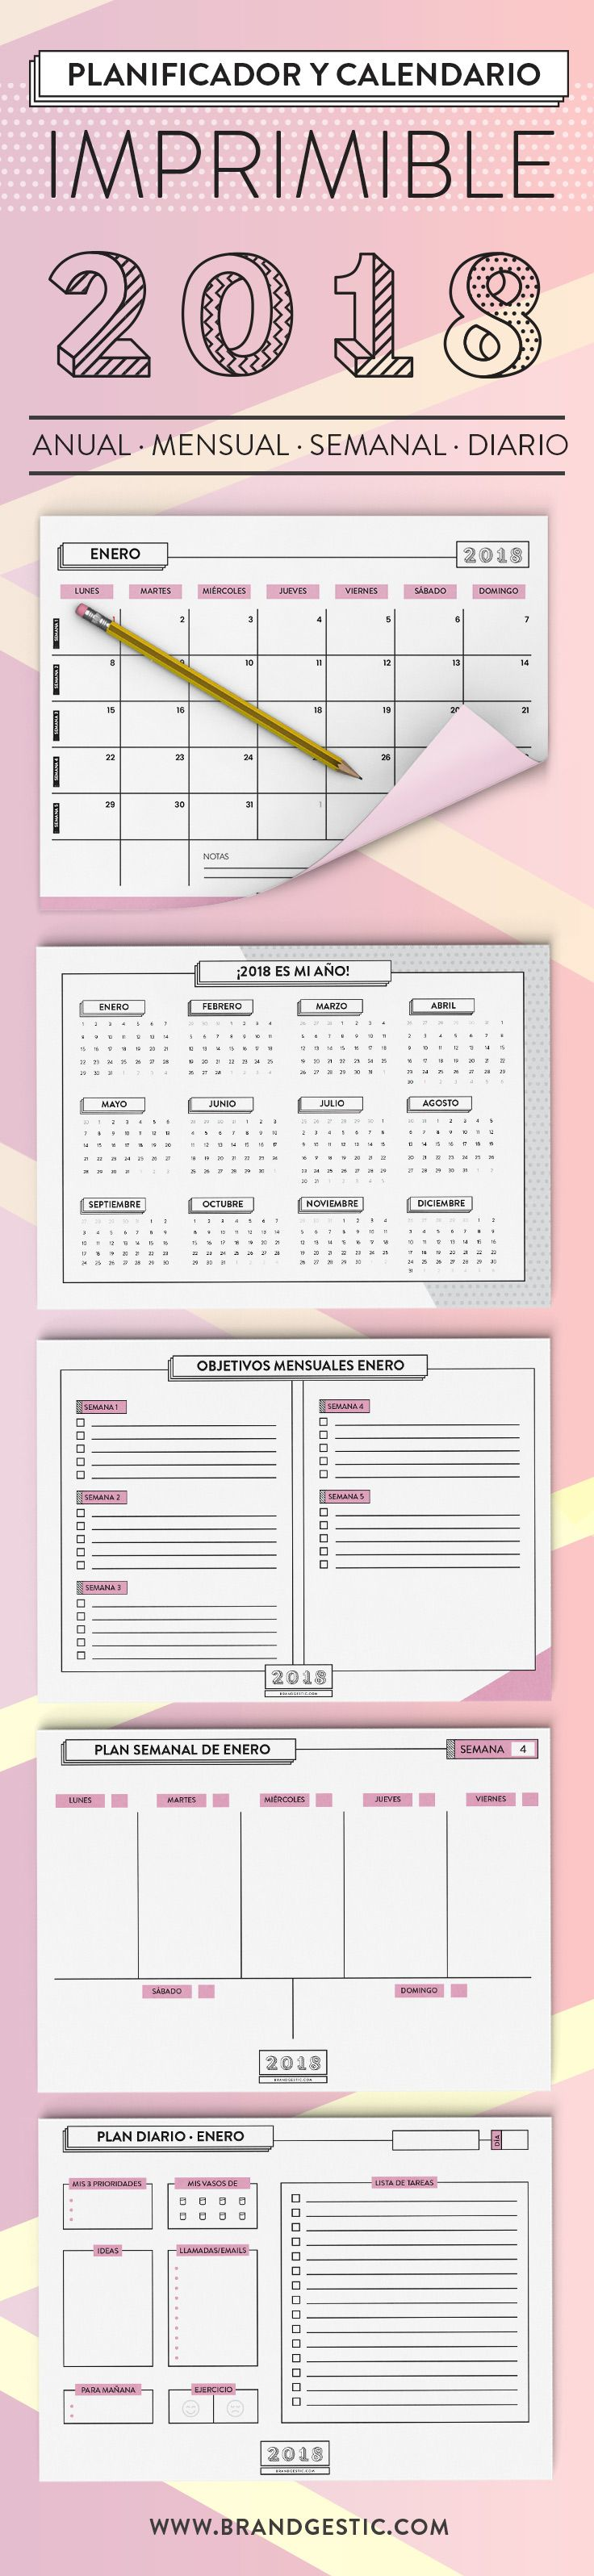 691 best Organizing images on Pinterest | Personal finance, Finance ...